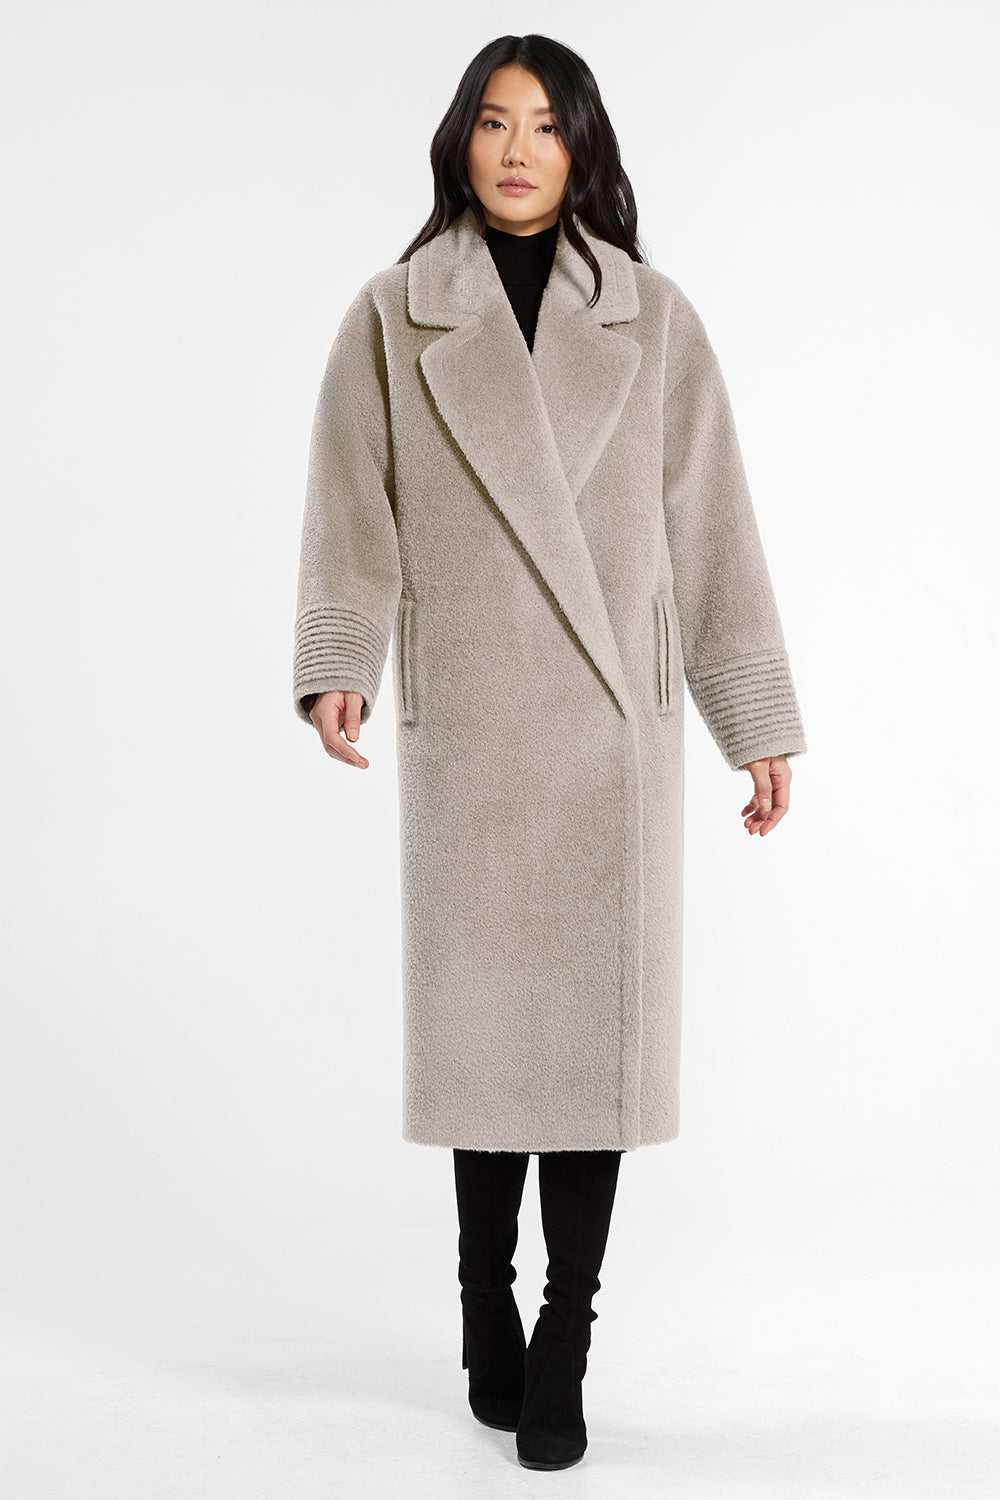 Sentaler Bouclé Alpaca Long Oversized Notched Collar Coat featured in Bouclé Alpaca and available in Sand. Seen from front